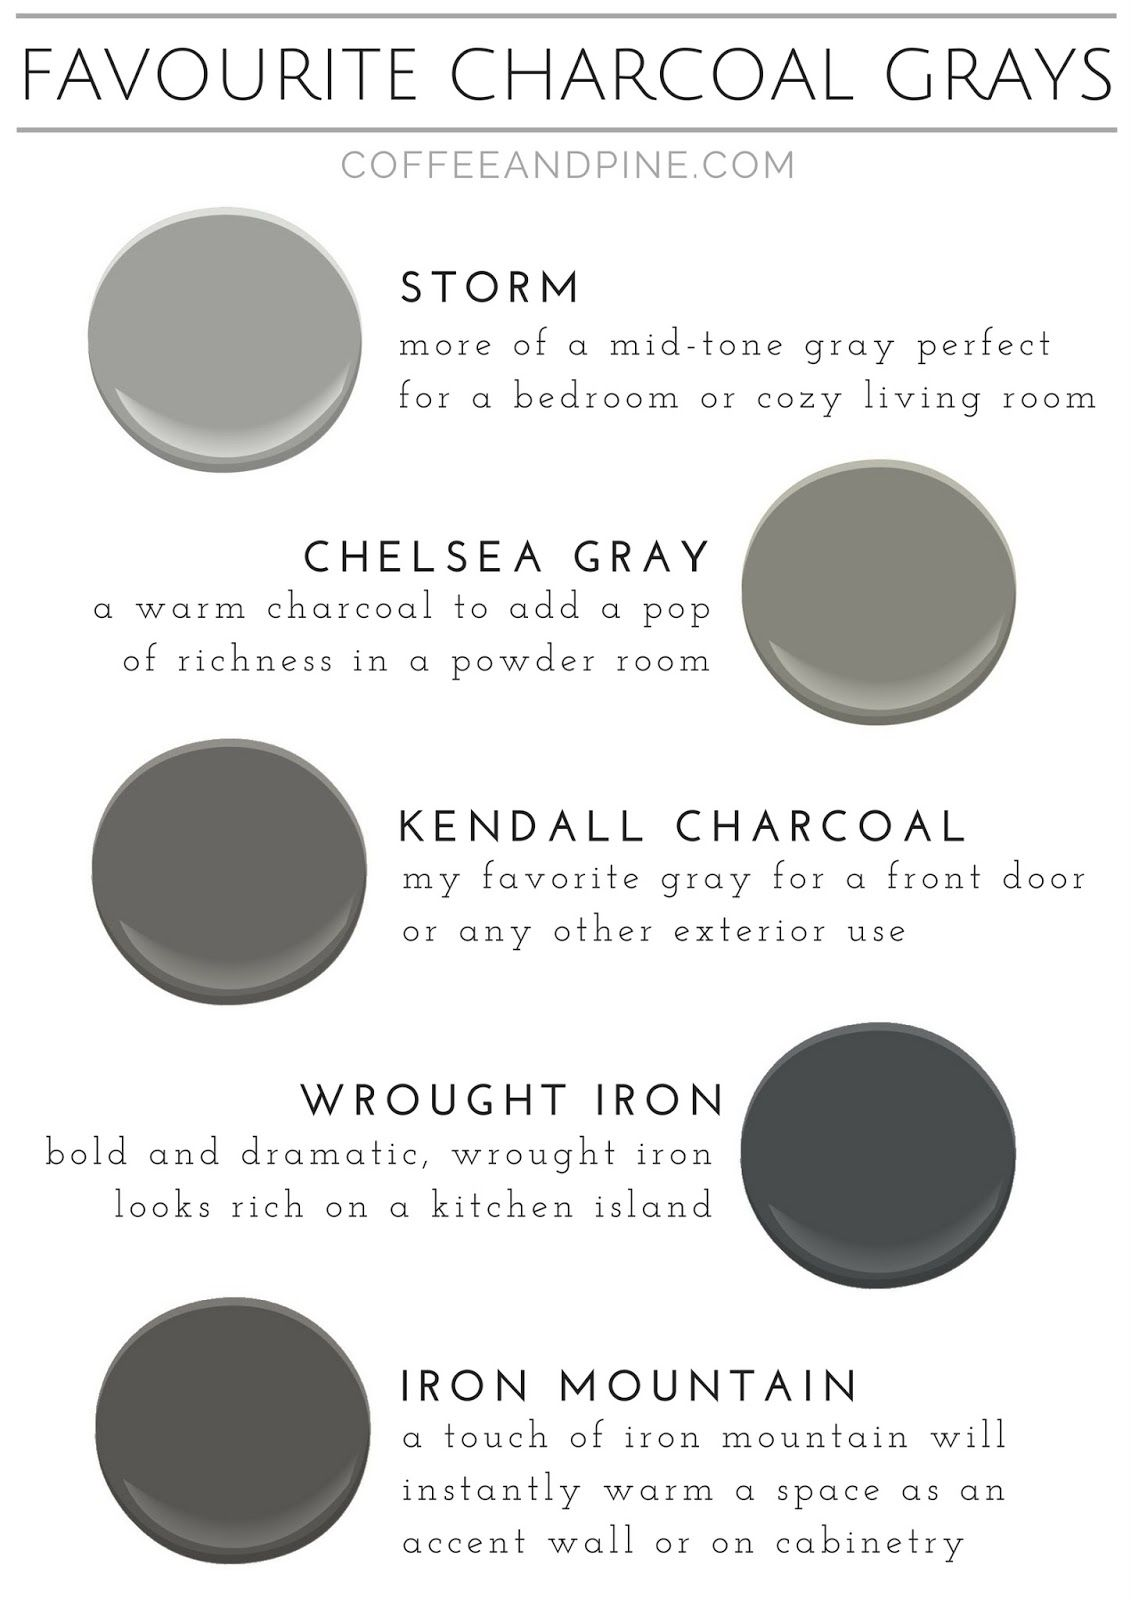 Favorite Gray Paint Colors For Your Home Diy Paintcolor Graydecor Www Coffeeandpine